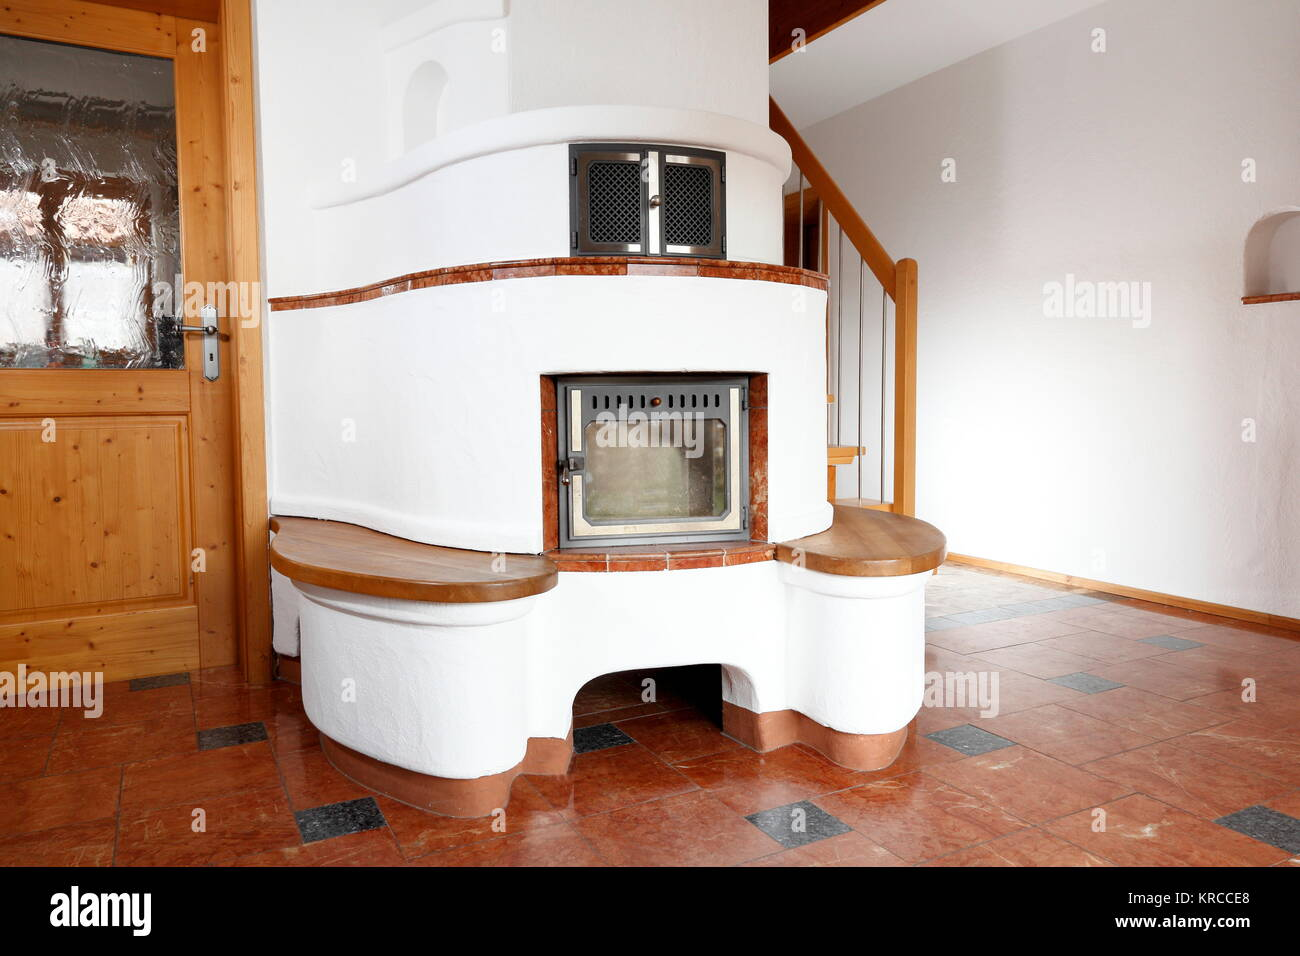 round wood stove in the room - Stock Image